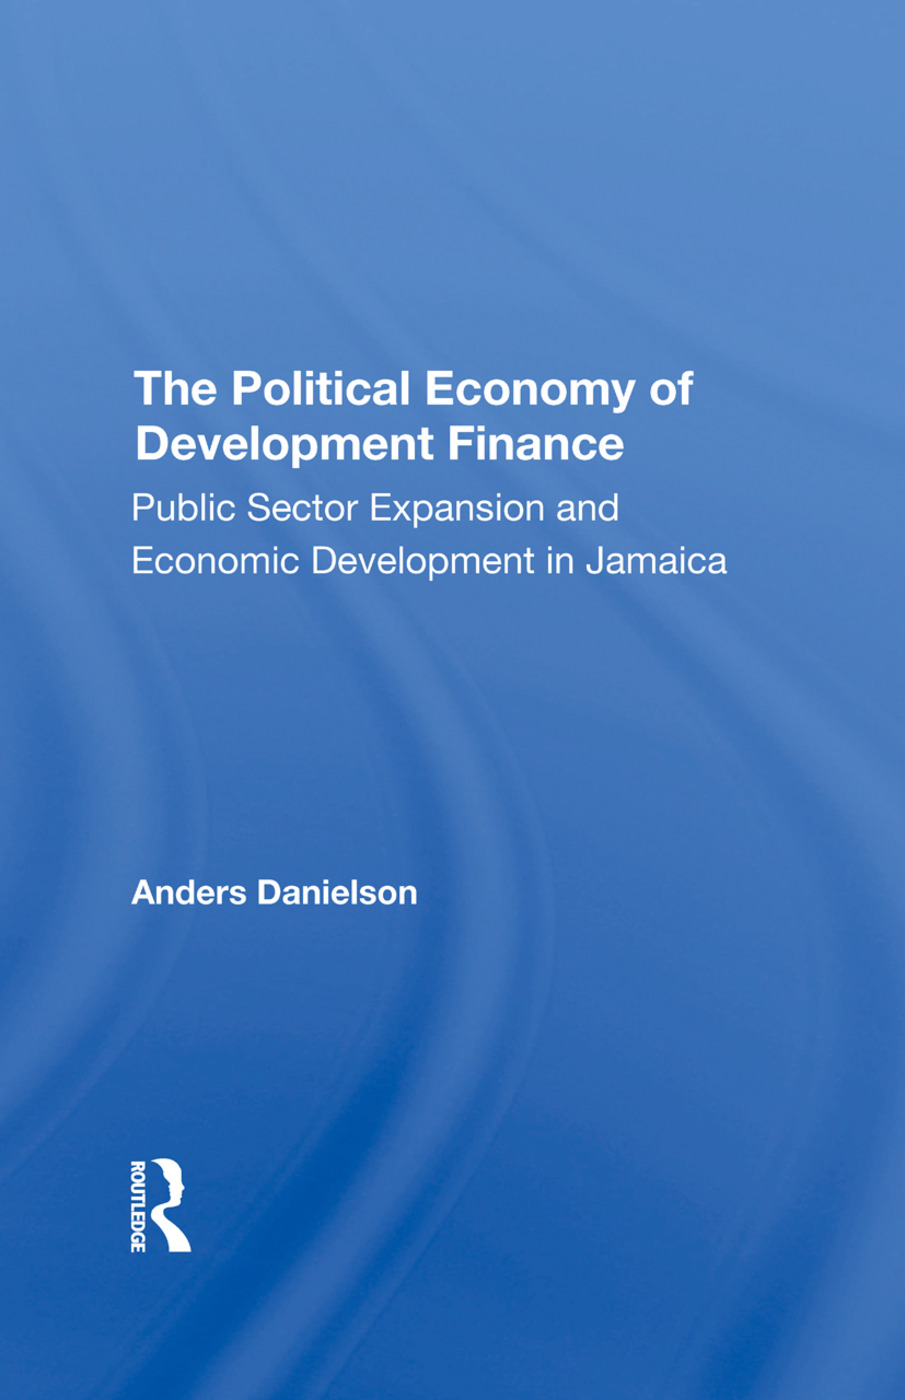 The Political Economy Of Development Finance: Public Sector Expansion And Economic Development In Jamaica, 1st Edition (Hardback) book cover